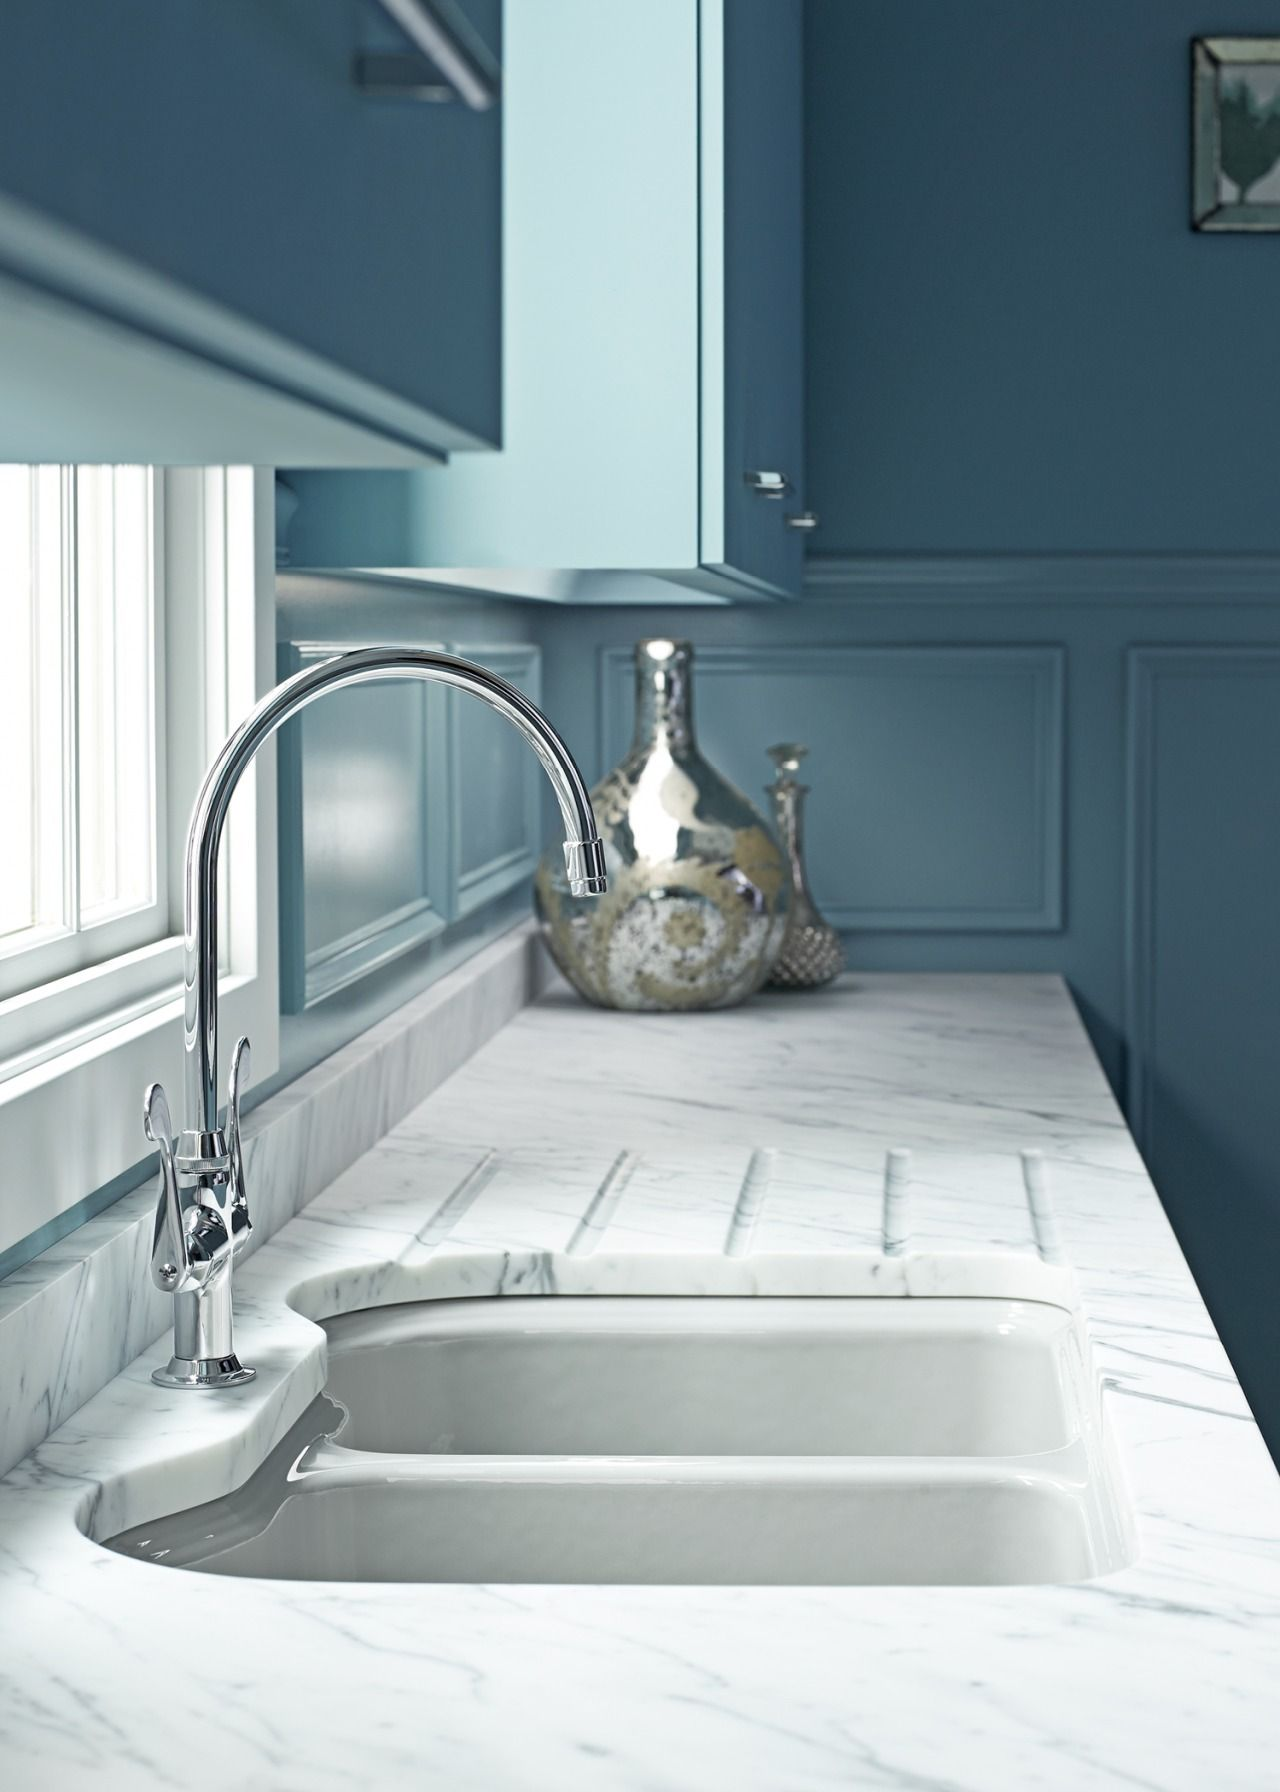 Grooves in counter for better water drainage | Cottonwood kitchen ...